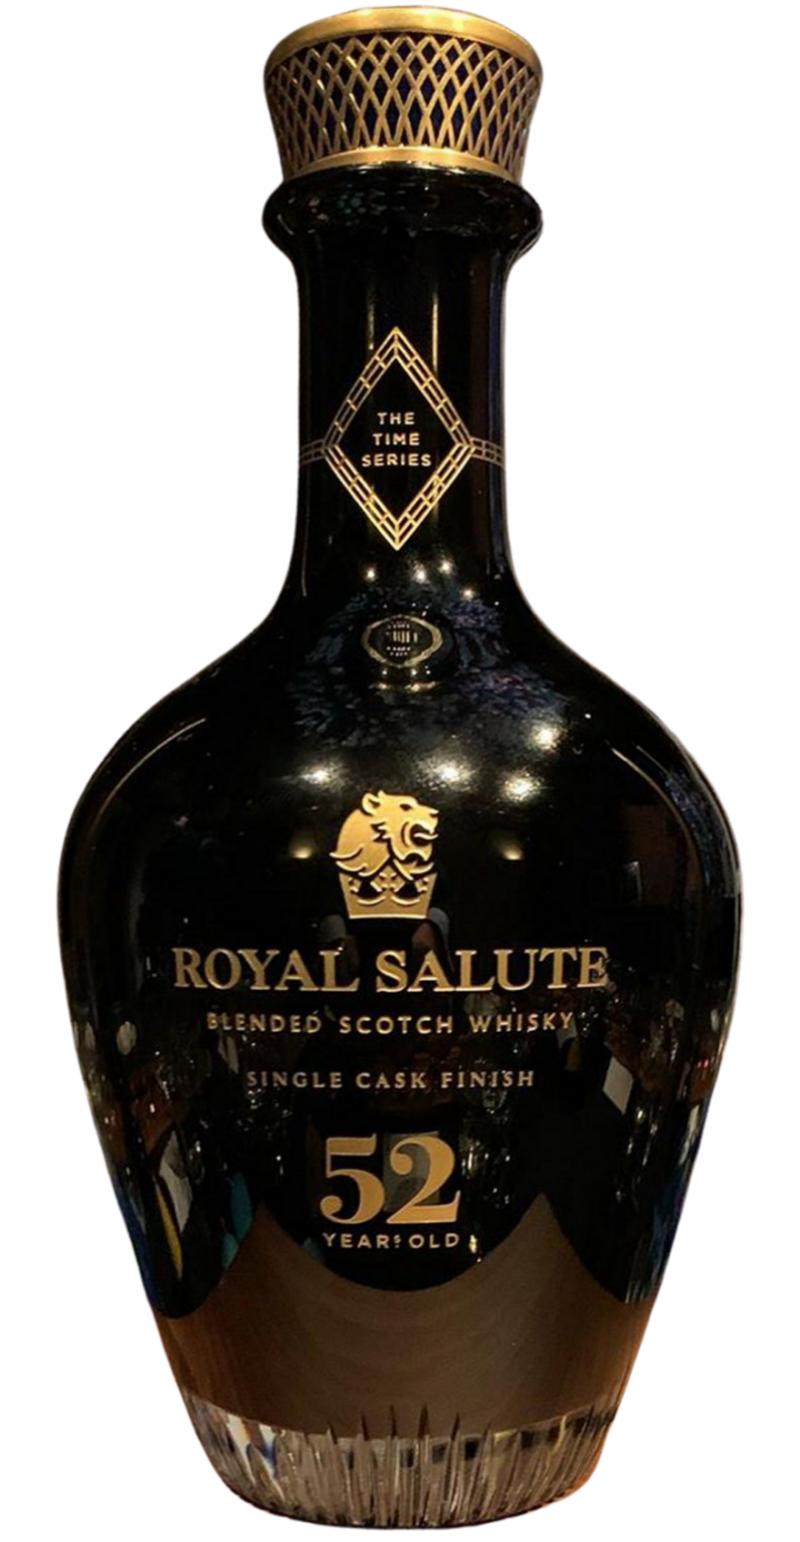 Royal Salute 52-year-old